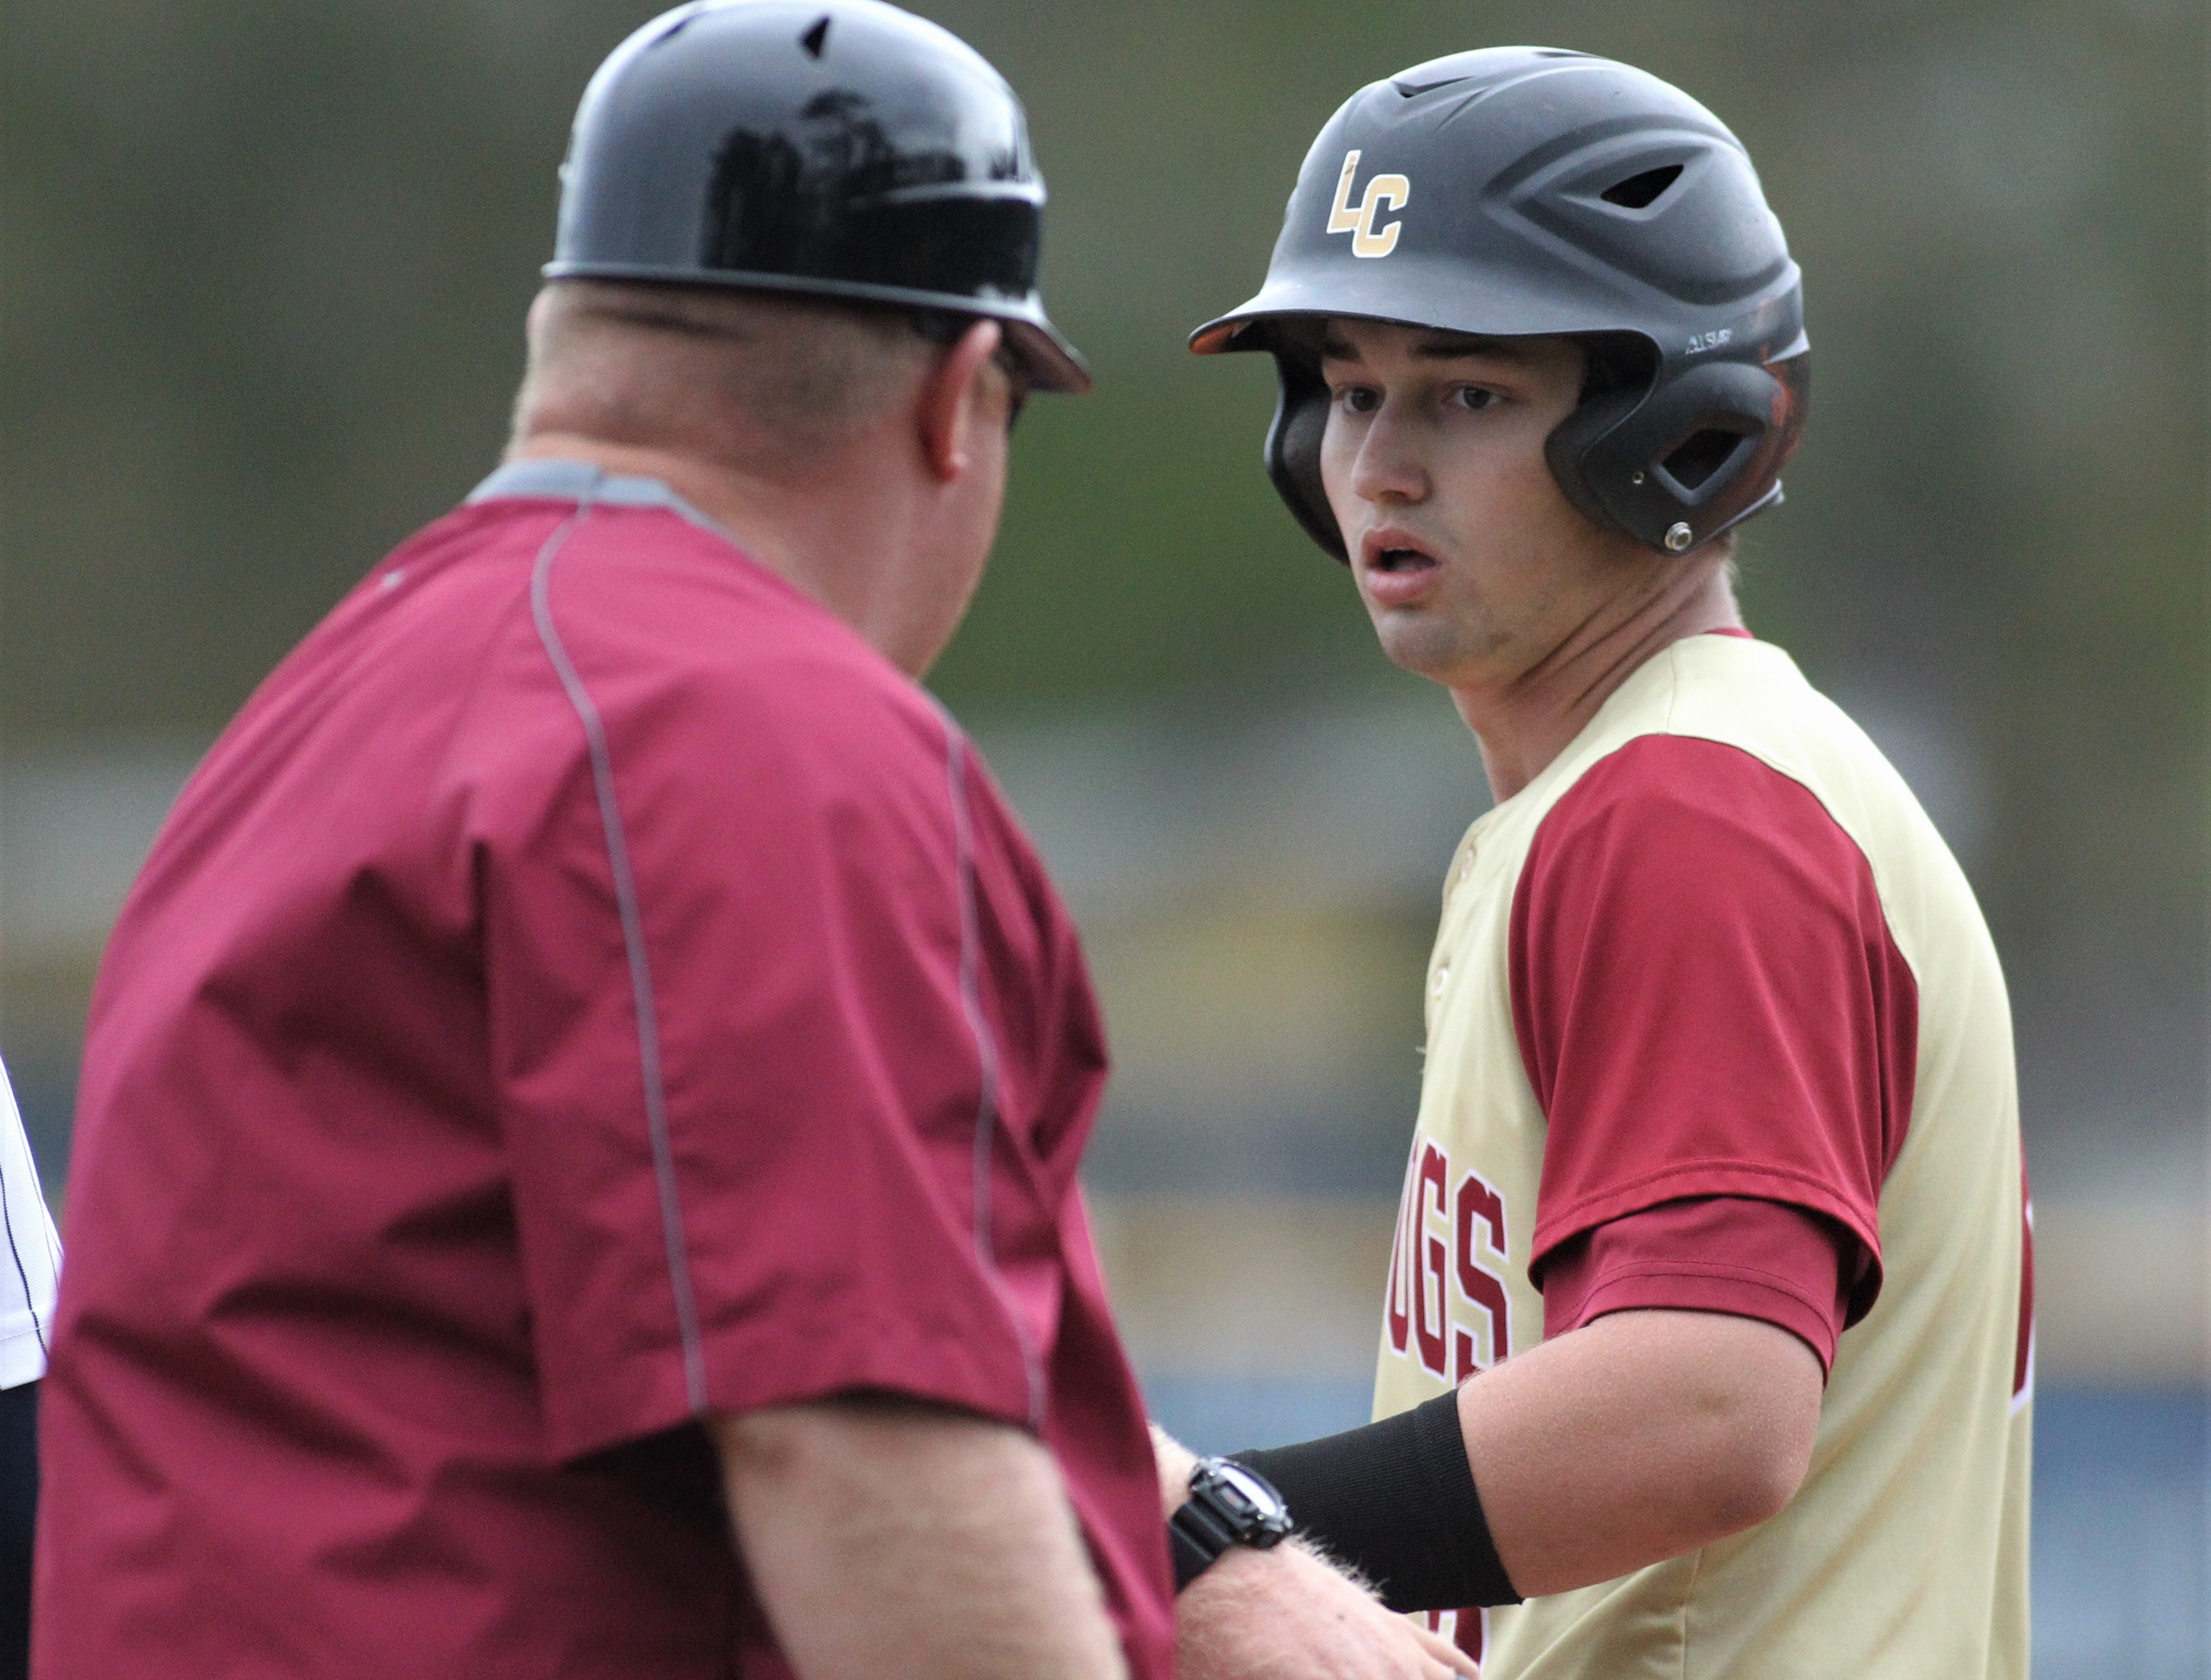 Liberty County's Hunter Sanford gets congratulated after a hit by first base coach Randall Crum as Liberty County's baseball team went on the road to beat Maclay 8-2 on Saturday, March 16, 2019. The Bulldogs played their first game following their head coach Corey Crum's tragic death six days ago.